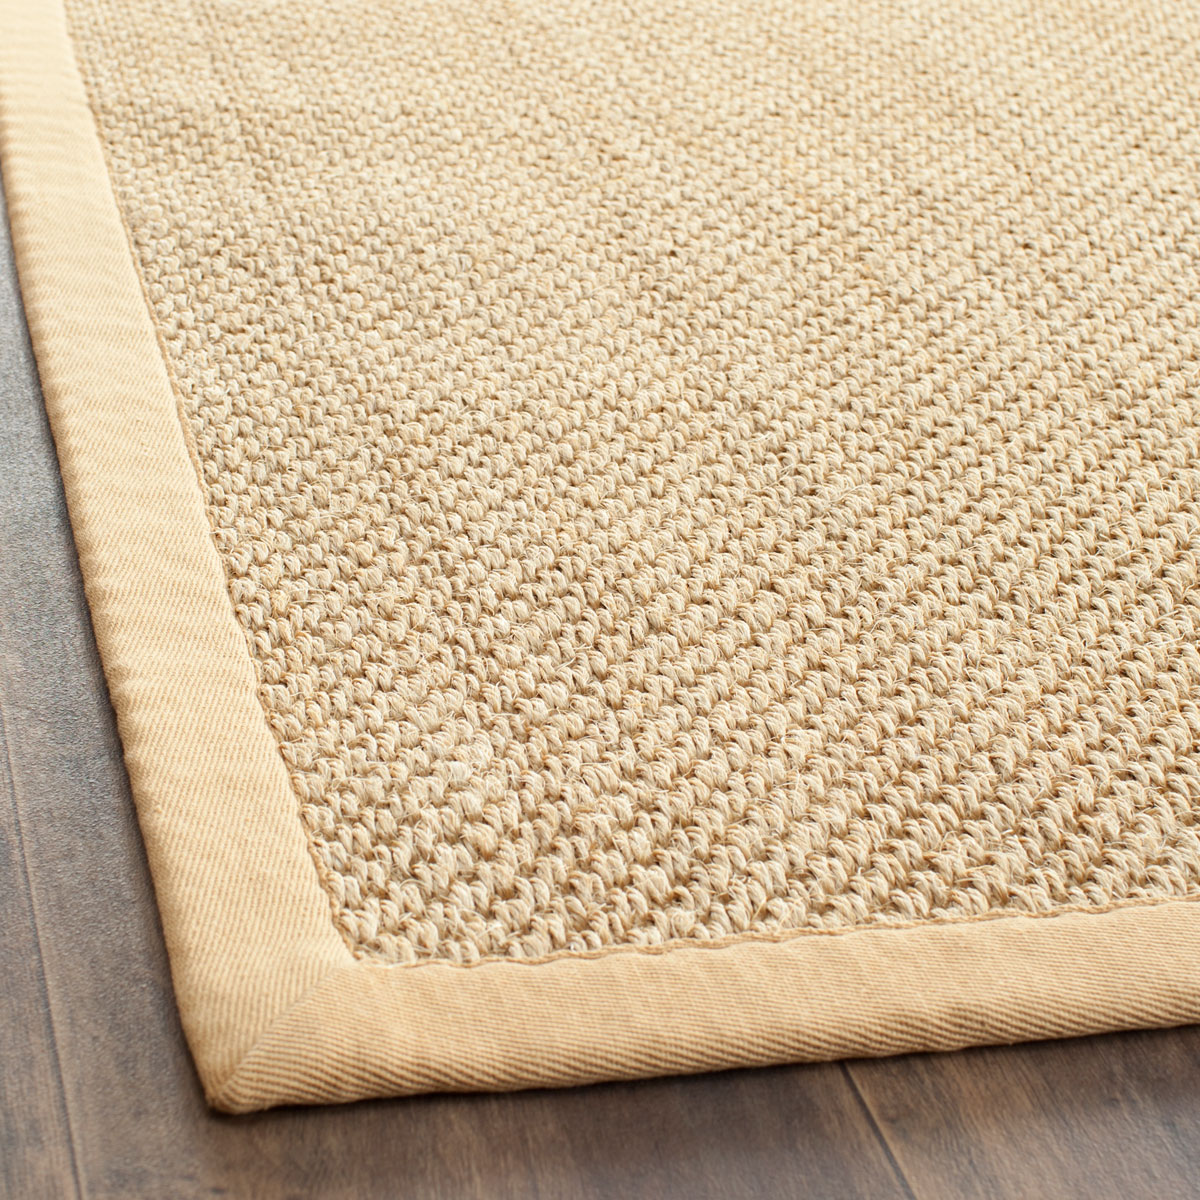 Rug Nf443a Natural Fiber Area Rugs By Safavieh